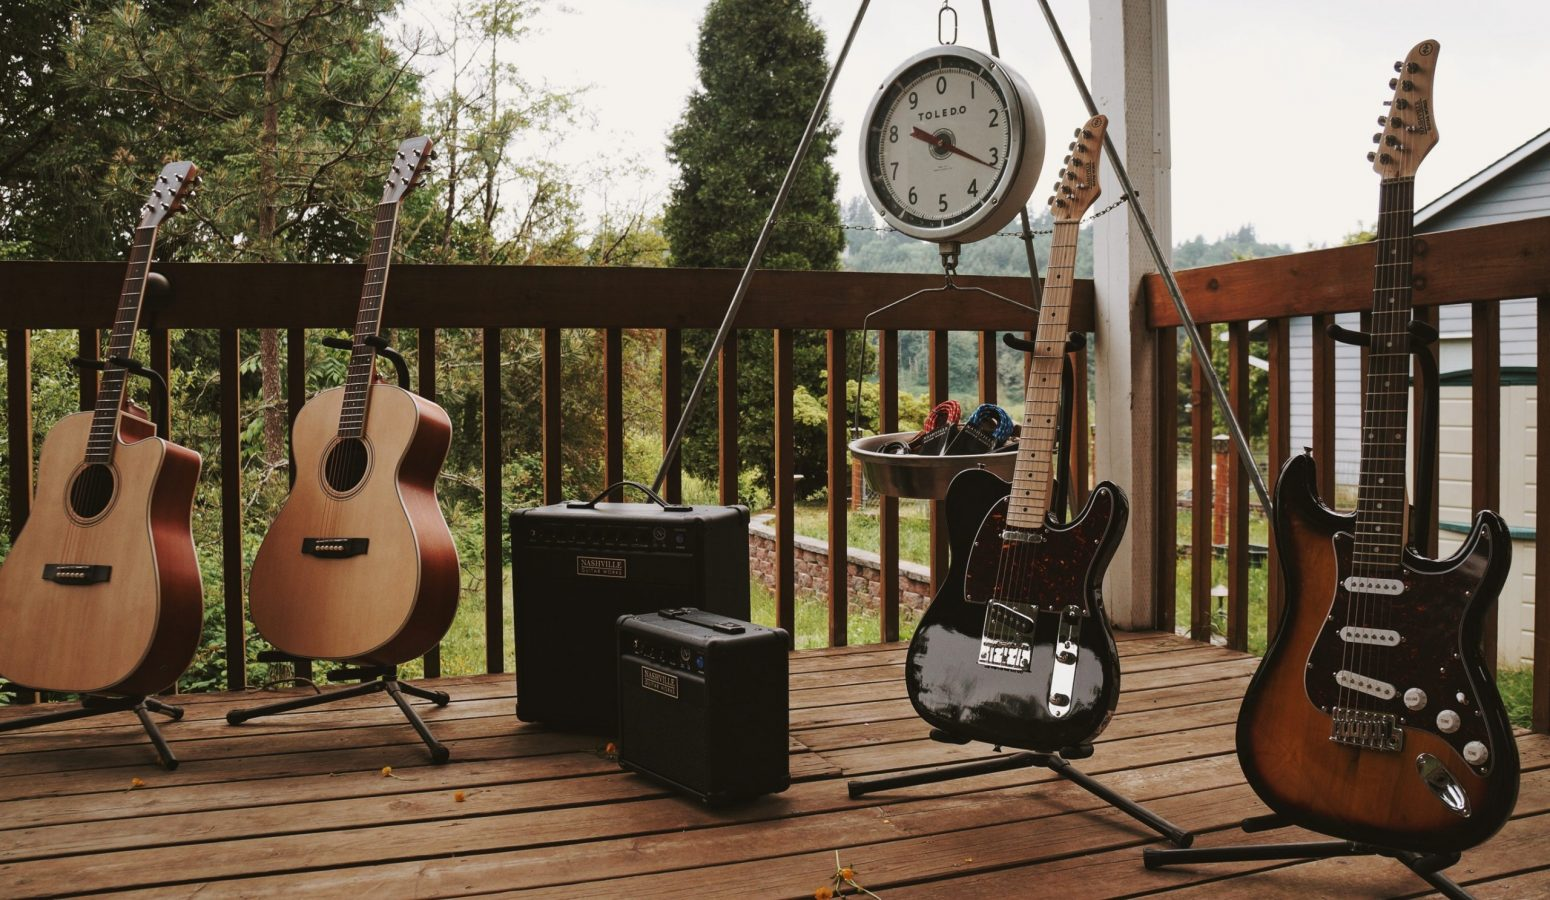 Aucoustic electric, electric, stratocaster, telecaster